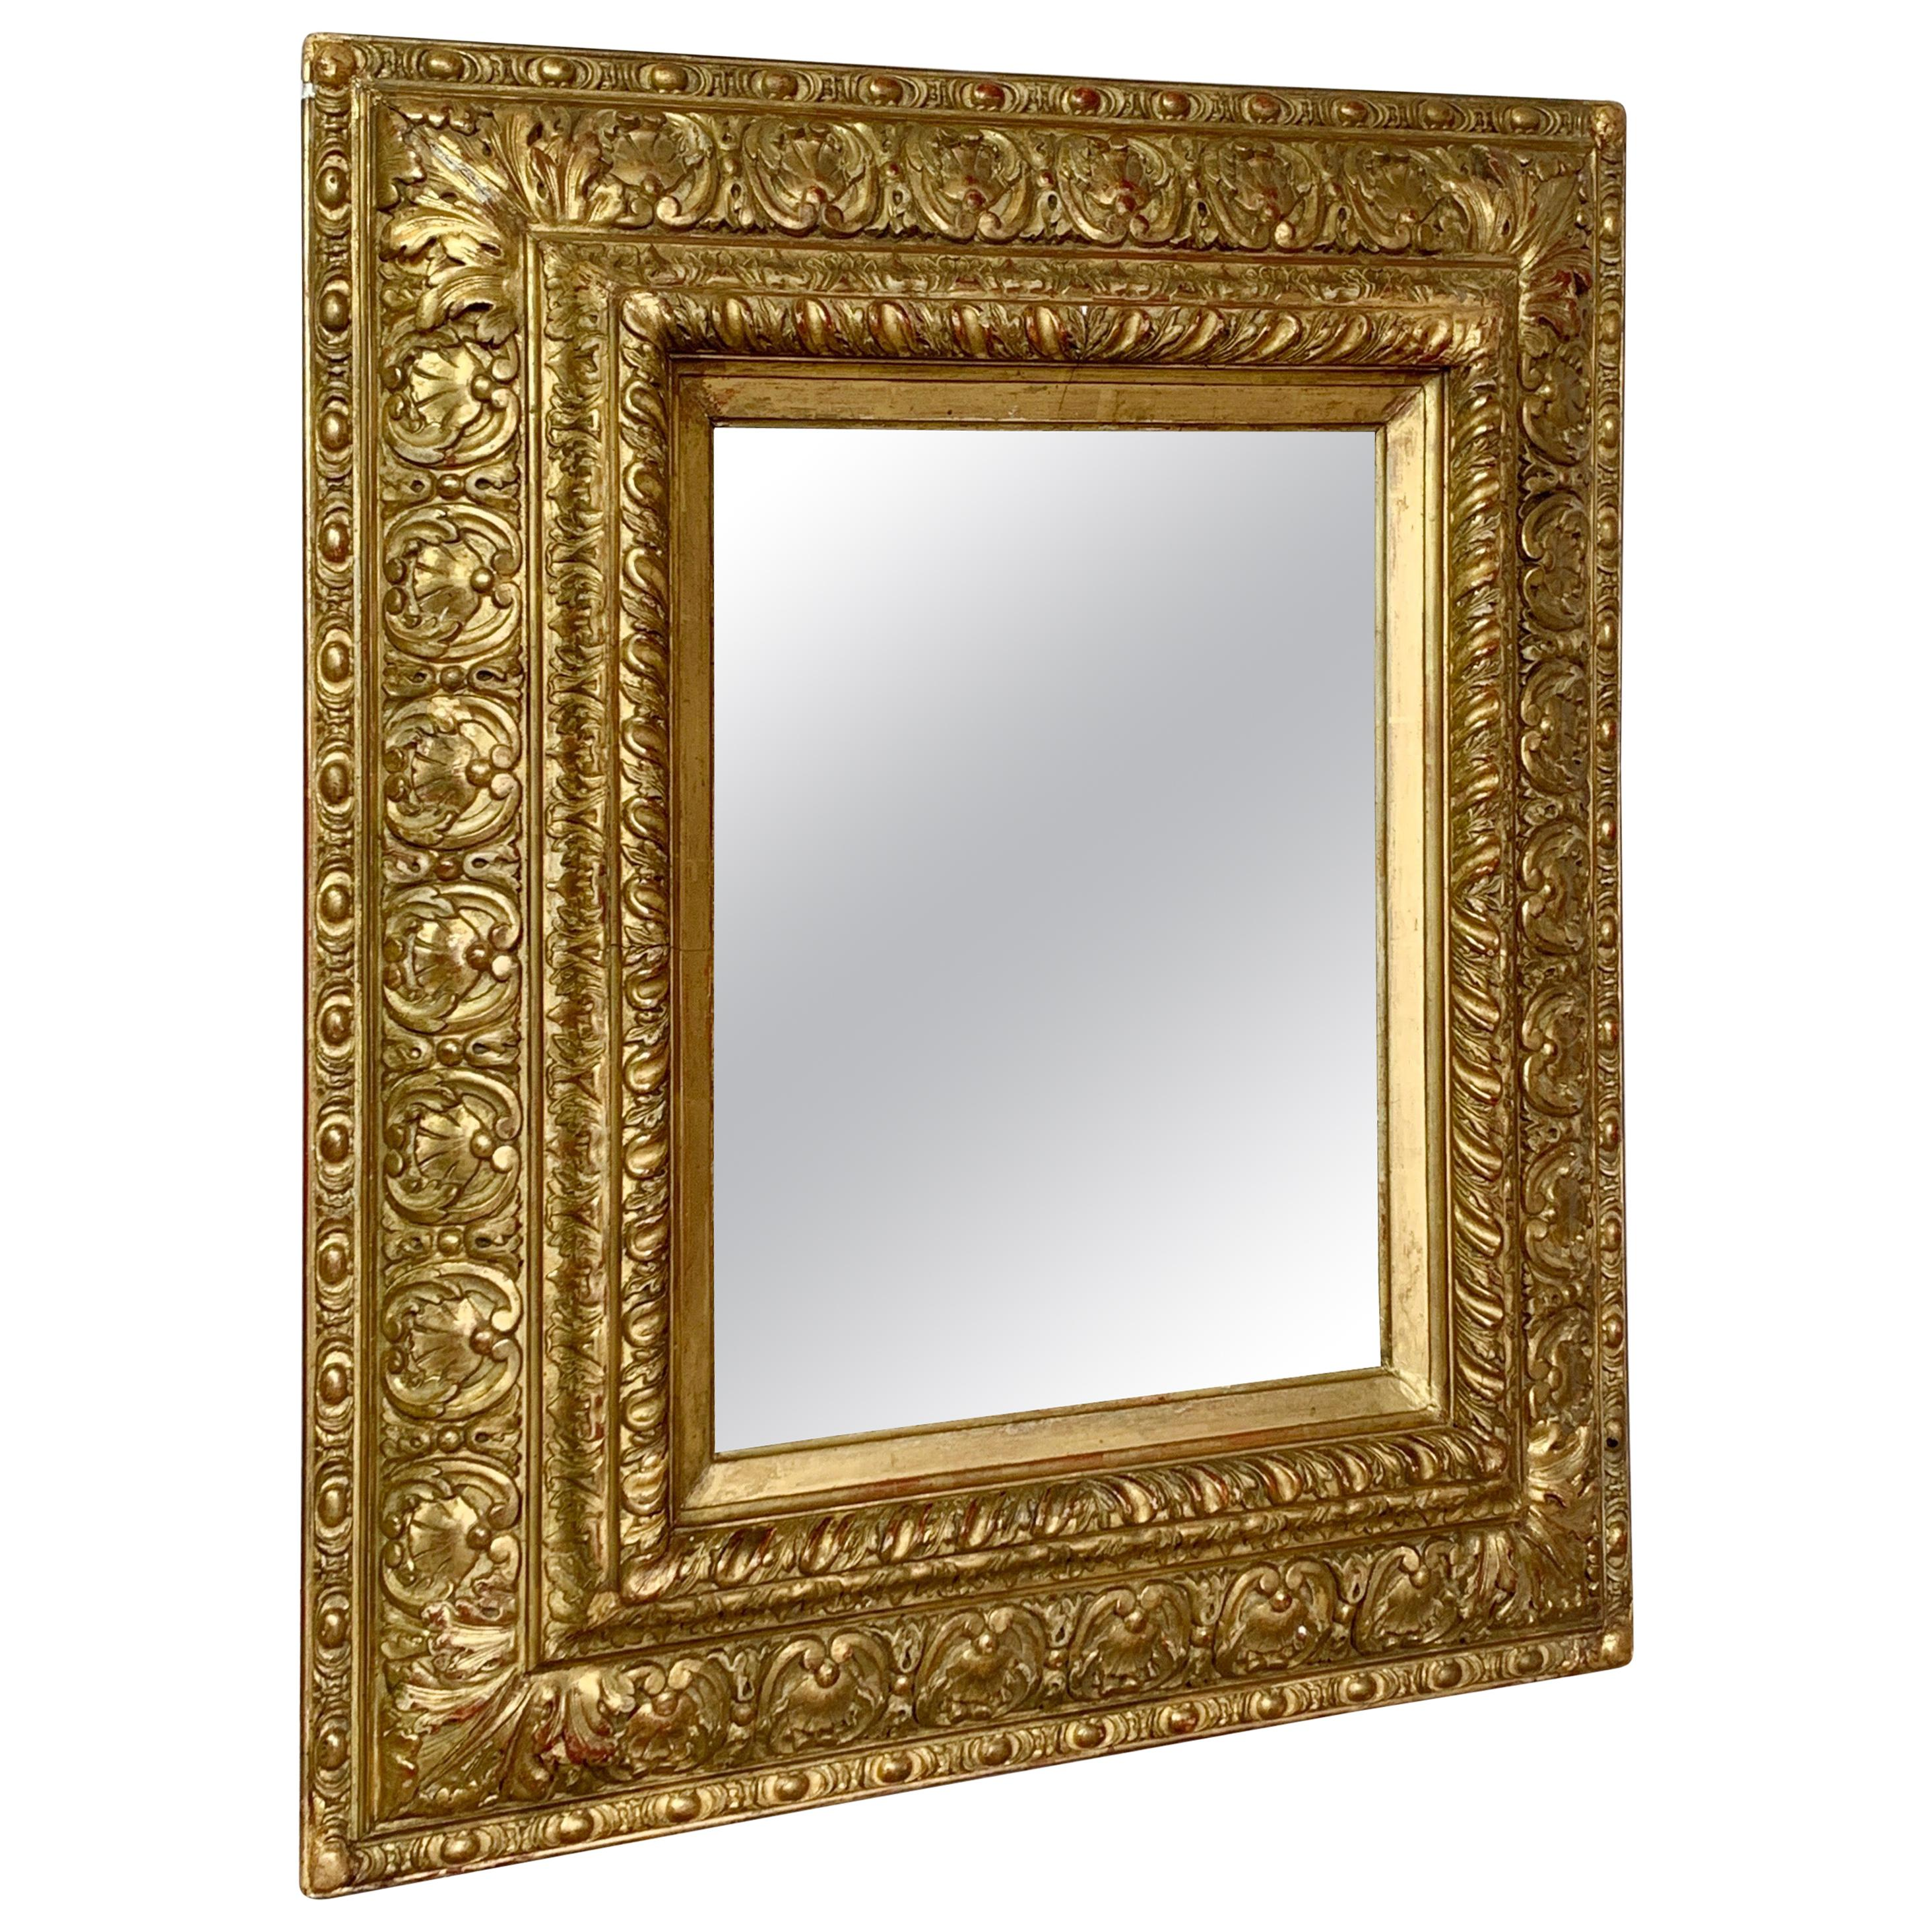 18th C, Ornate Gilt French Carved Mirror